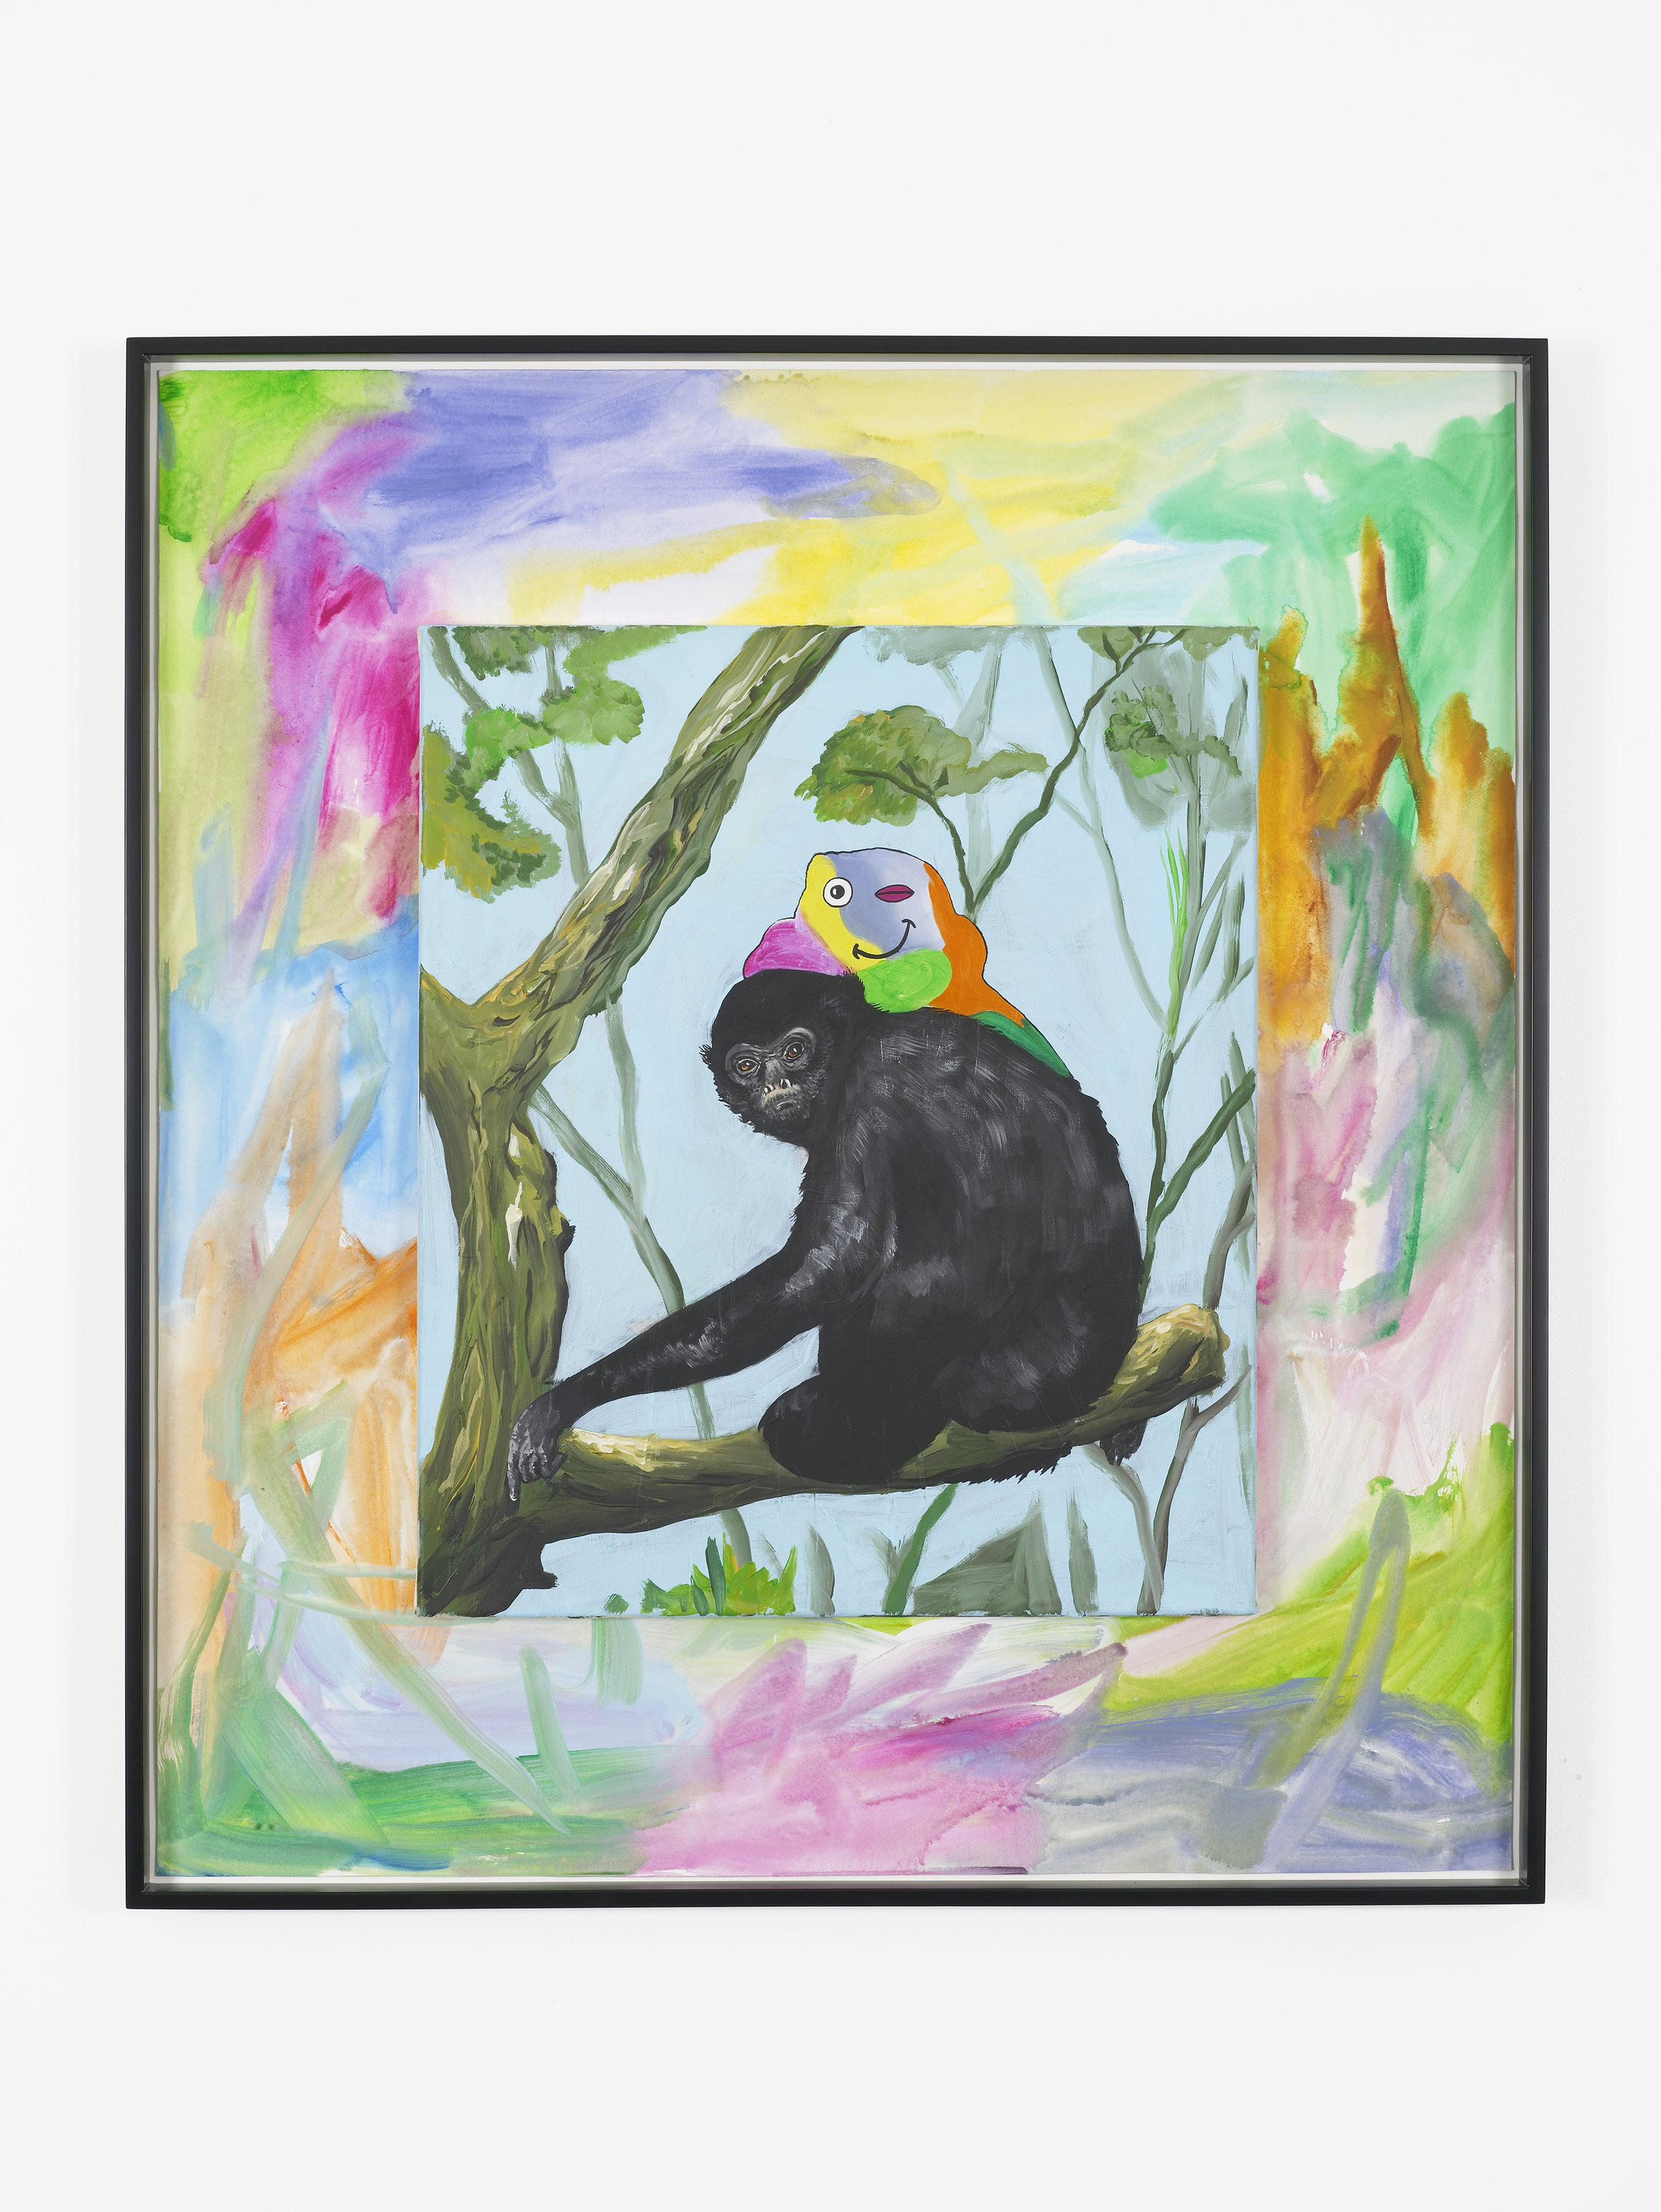 Gibbons Grin  2017  Acrylic on paper and canvas  99 x 90 cm / 39 x 35.4 in, unframed  103.2 x 93.3 cm / 40.6 x 36.7 in, framed